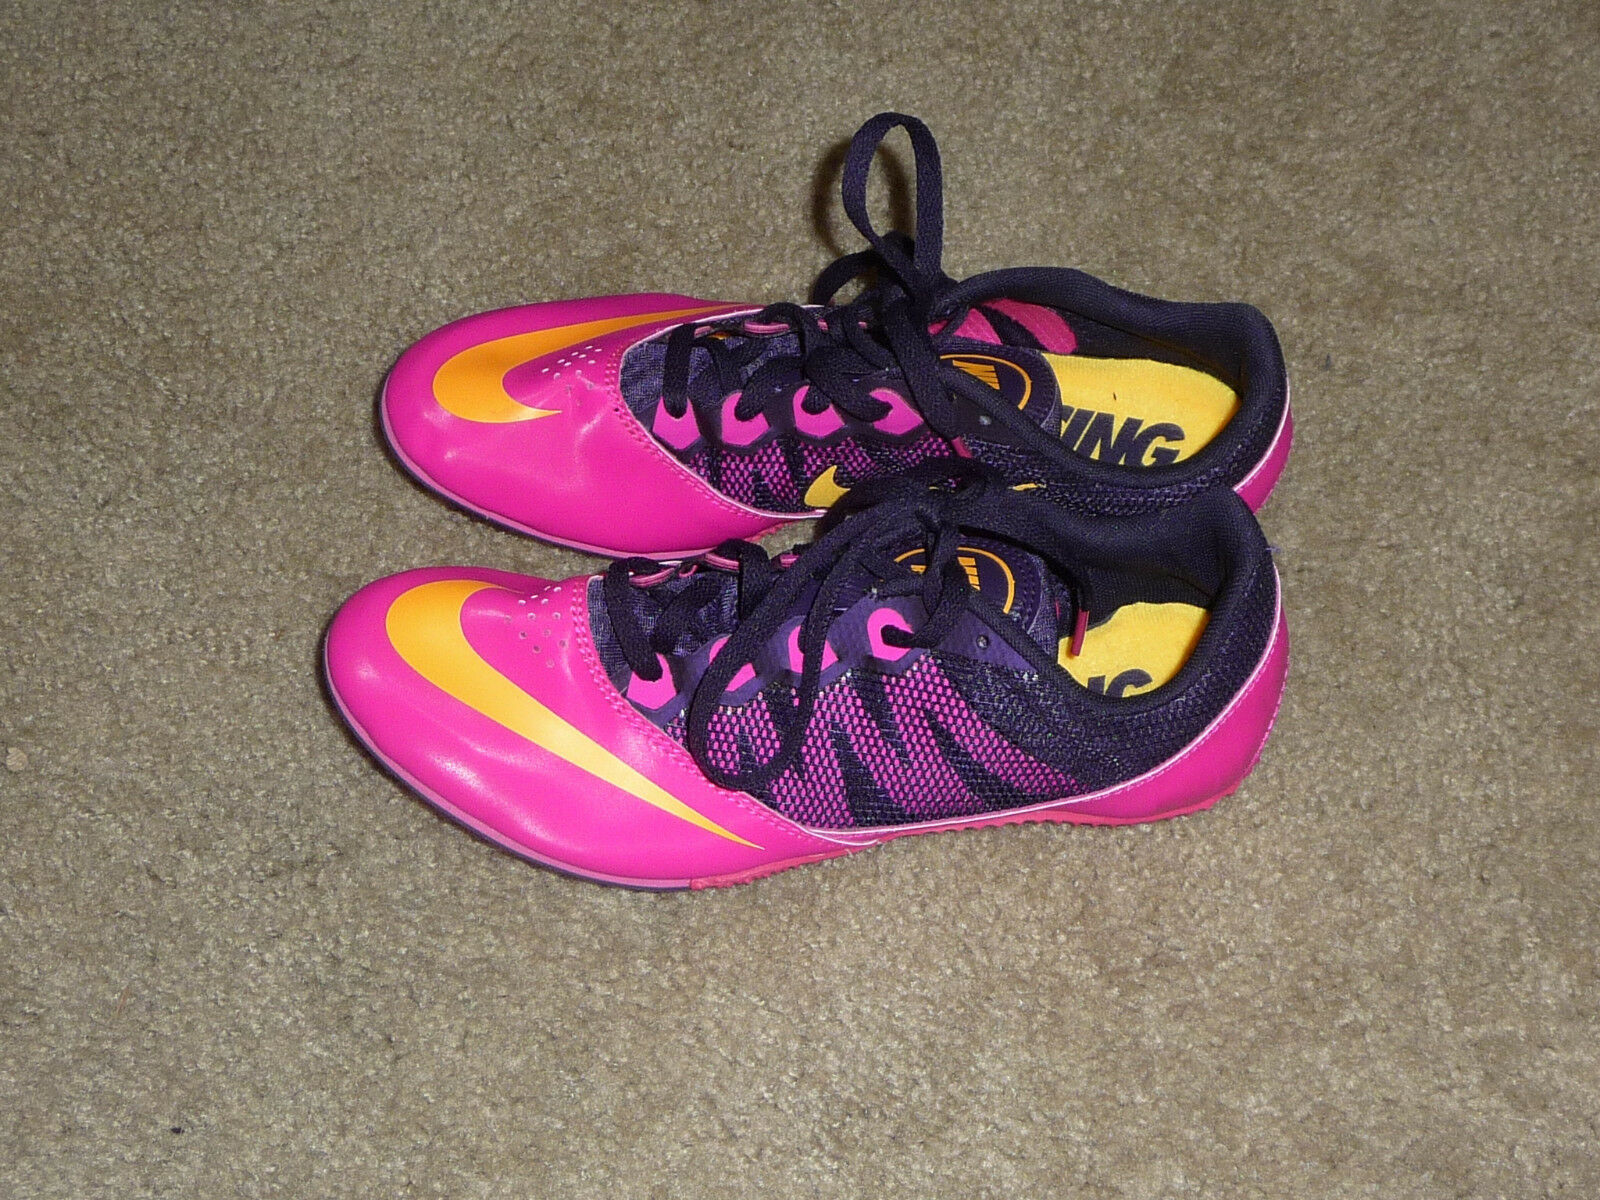 NIKE ZOOM RIVAL S 7 8.5 RACING TRACK SHOES WOMENS 8.5 7  BRAND NEW PINK FOIL 9634c0